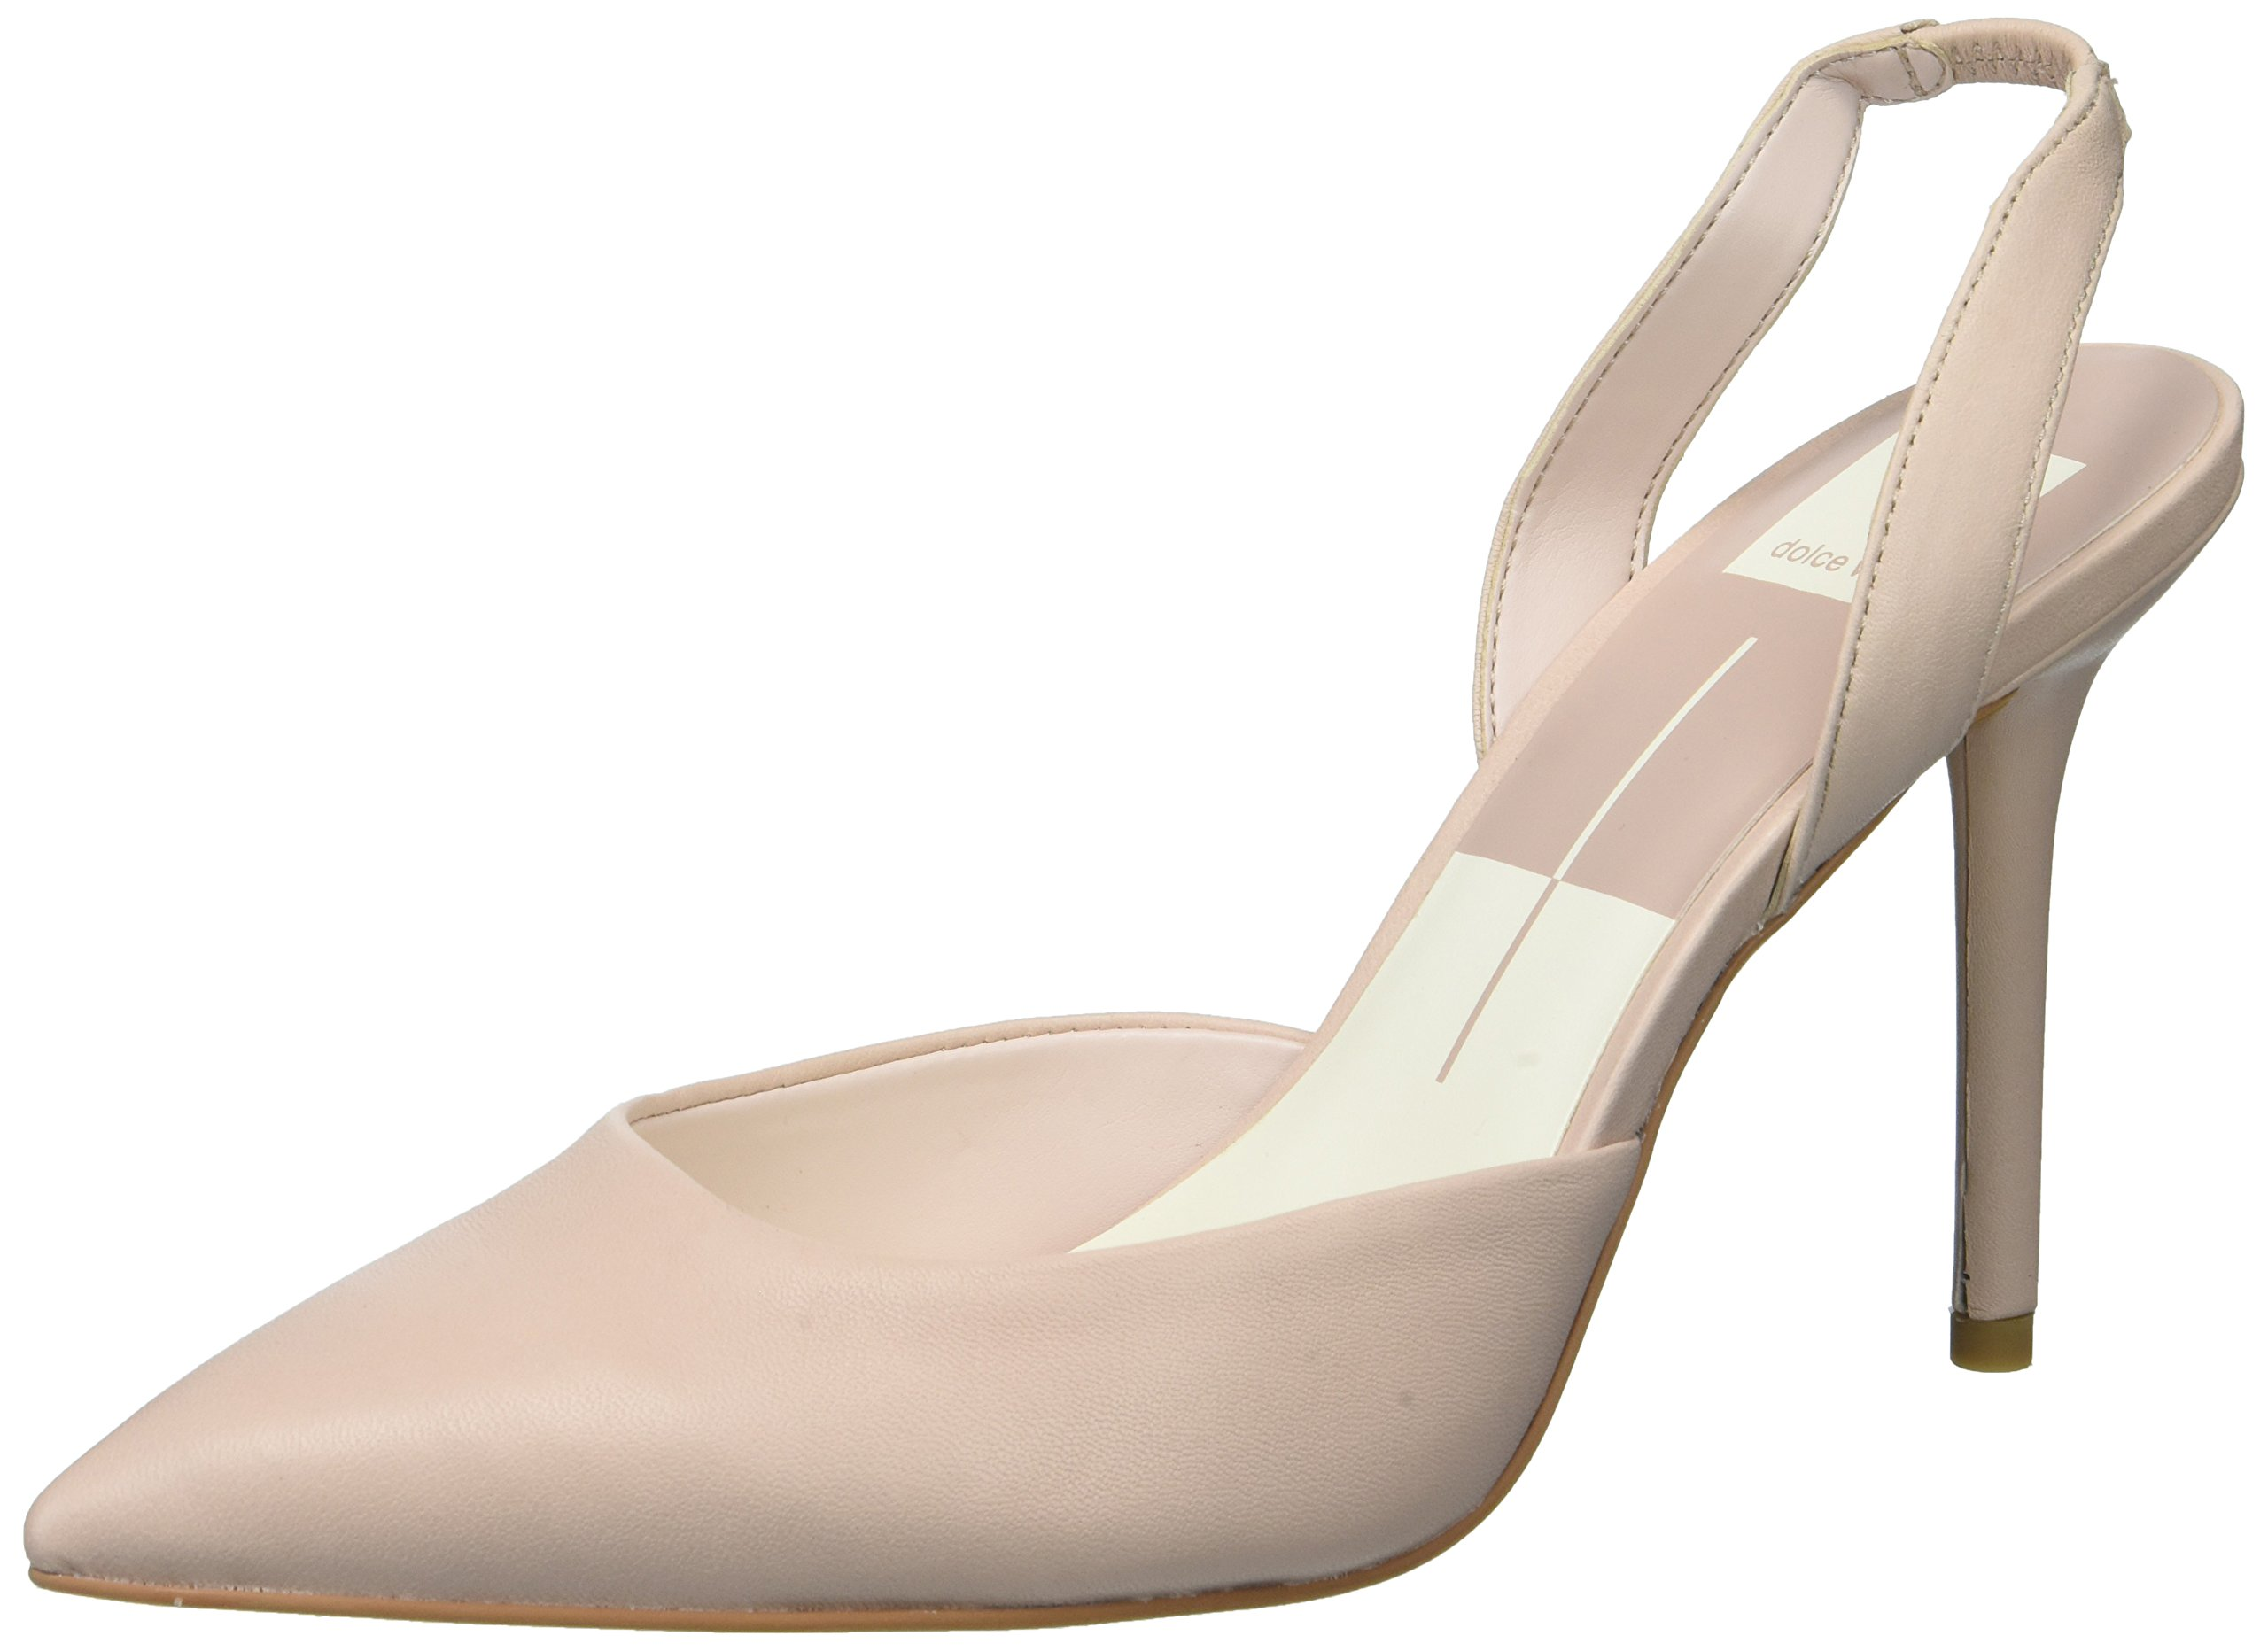 Dolce Vita Women's Maureen Pump, Light Blush Leather, 7 Medium US